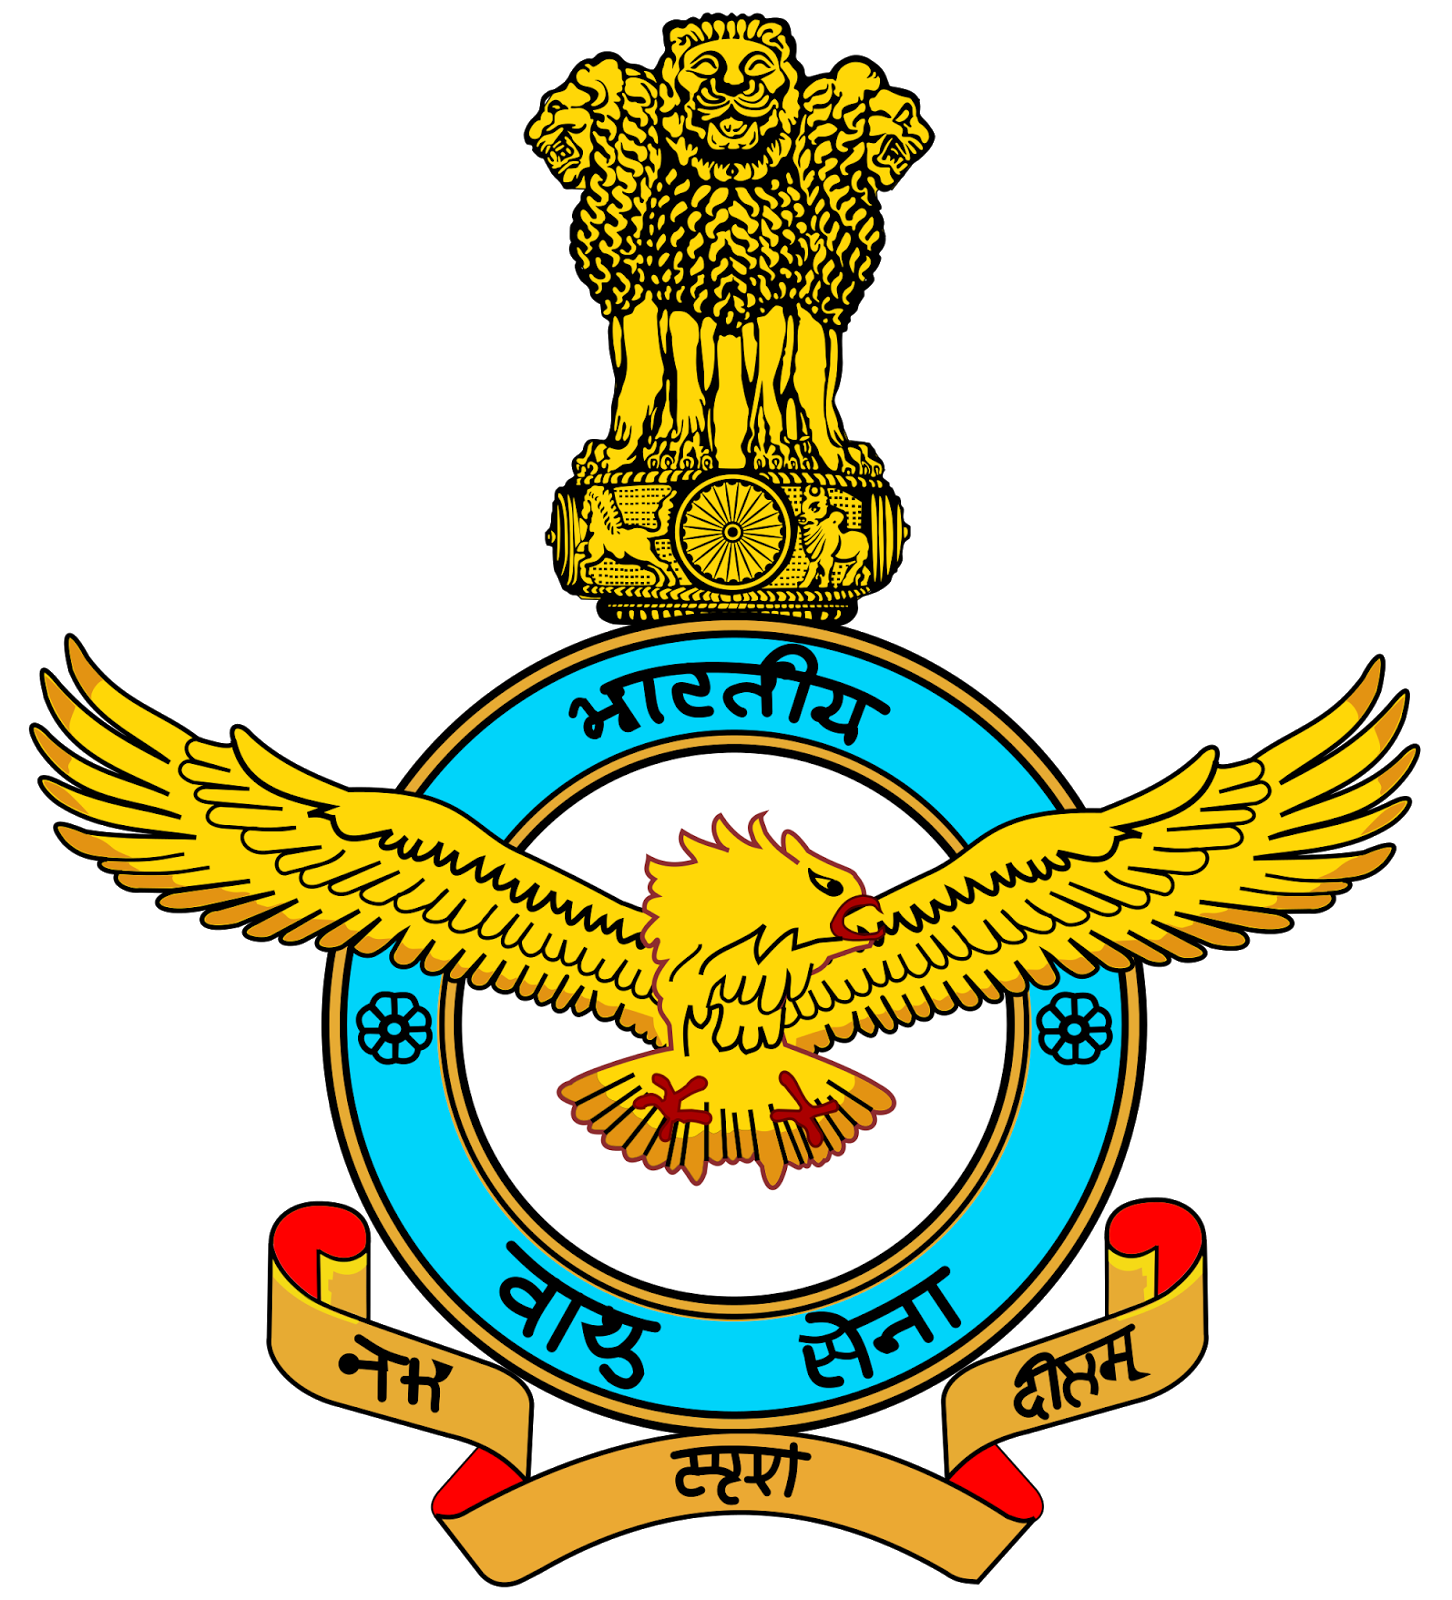 Indian army recruitment of officers be btech ssct 48 course commencing in april 2017 at officers training academy ota chennai tamil nadu biocorpaavc Gallery